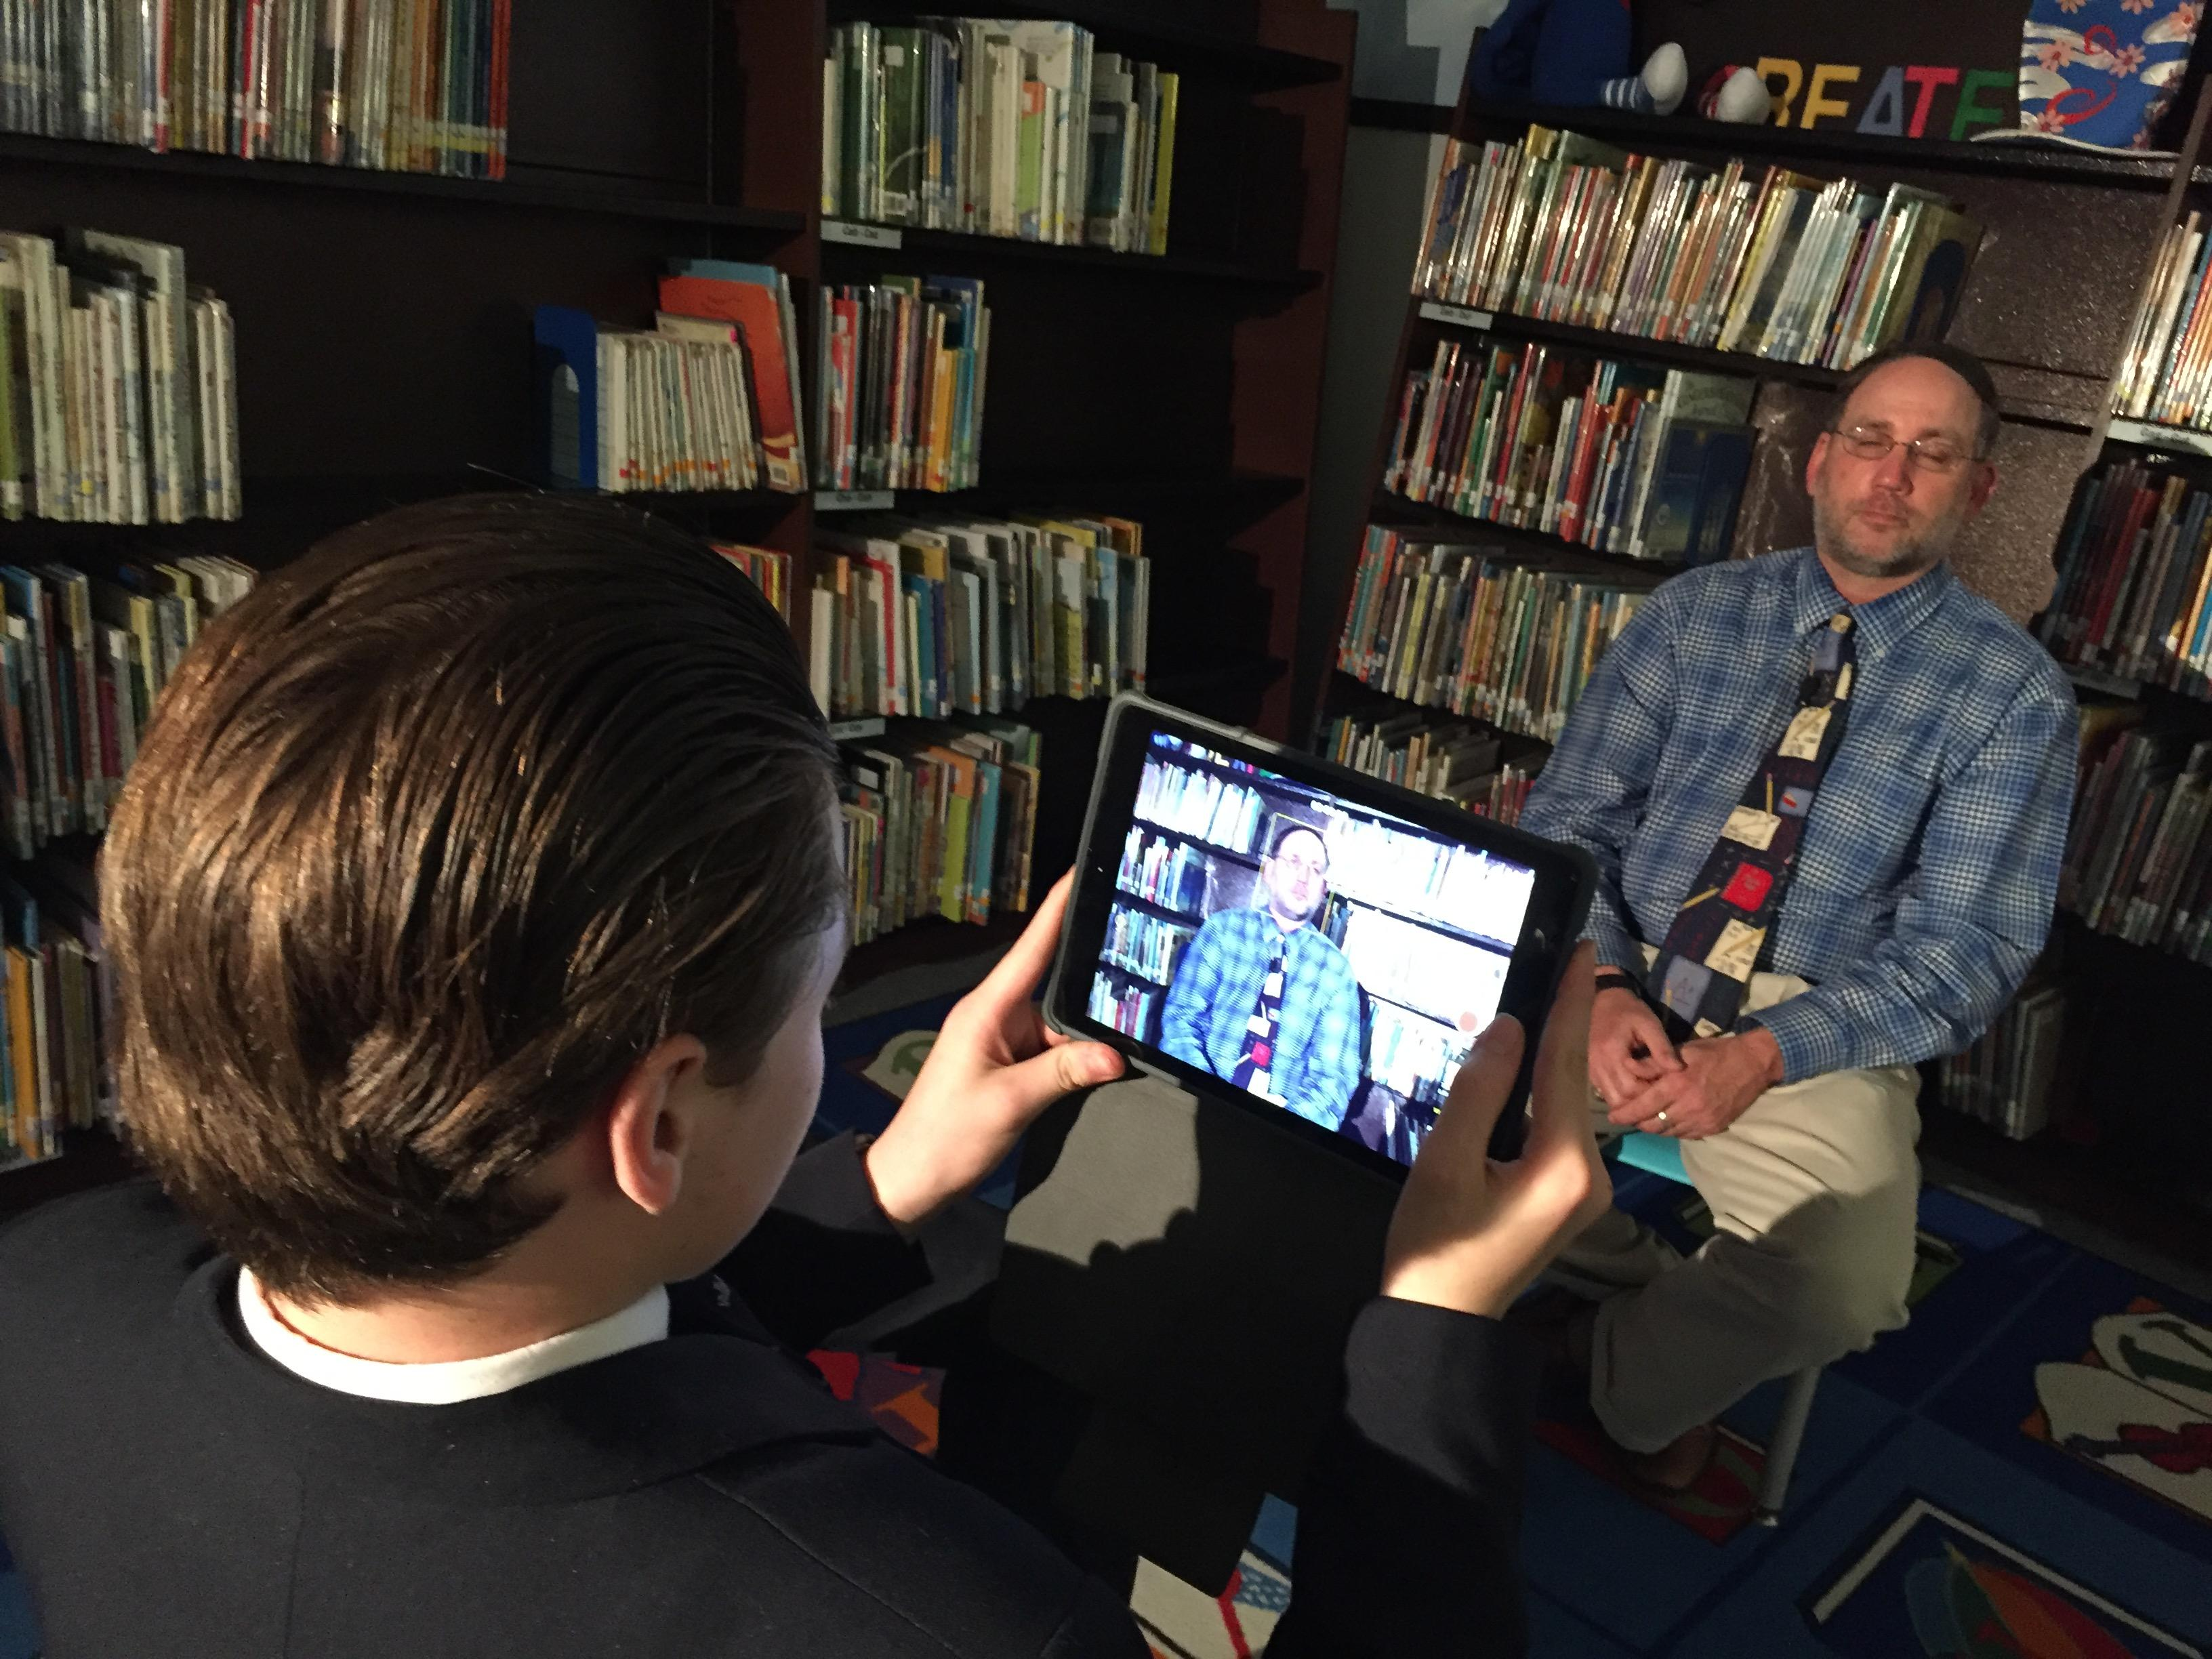 An 11-year-old's new documentary looks back at 170 years of history at Haw Creek School.  In the last year, Chase Willis-Johnson's done extensive research and interviewed everyone from past students to the current principal for a documentary about the school's past.  (Photo credit: Buncombe County Schools)